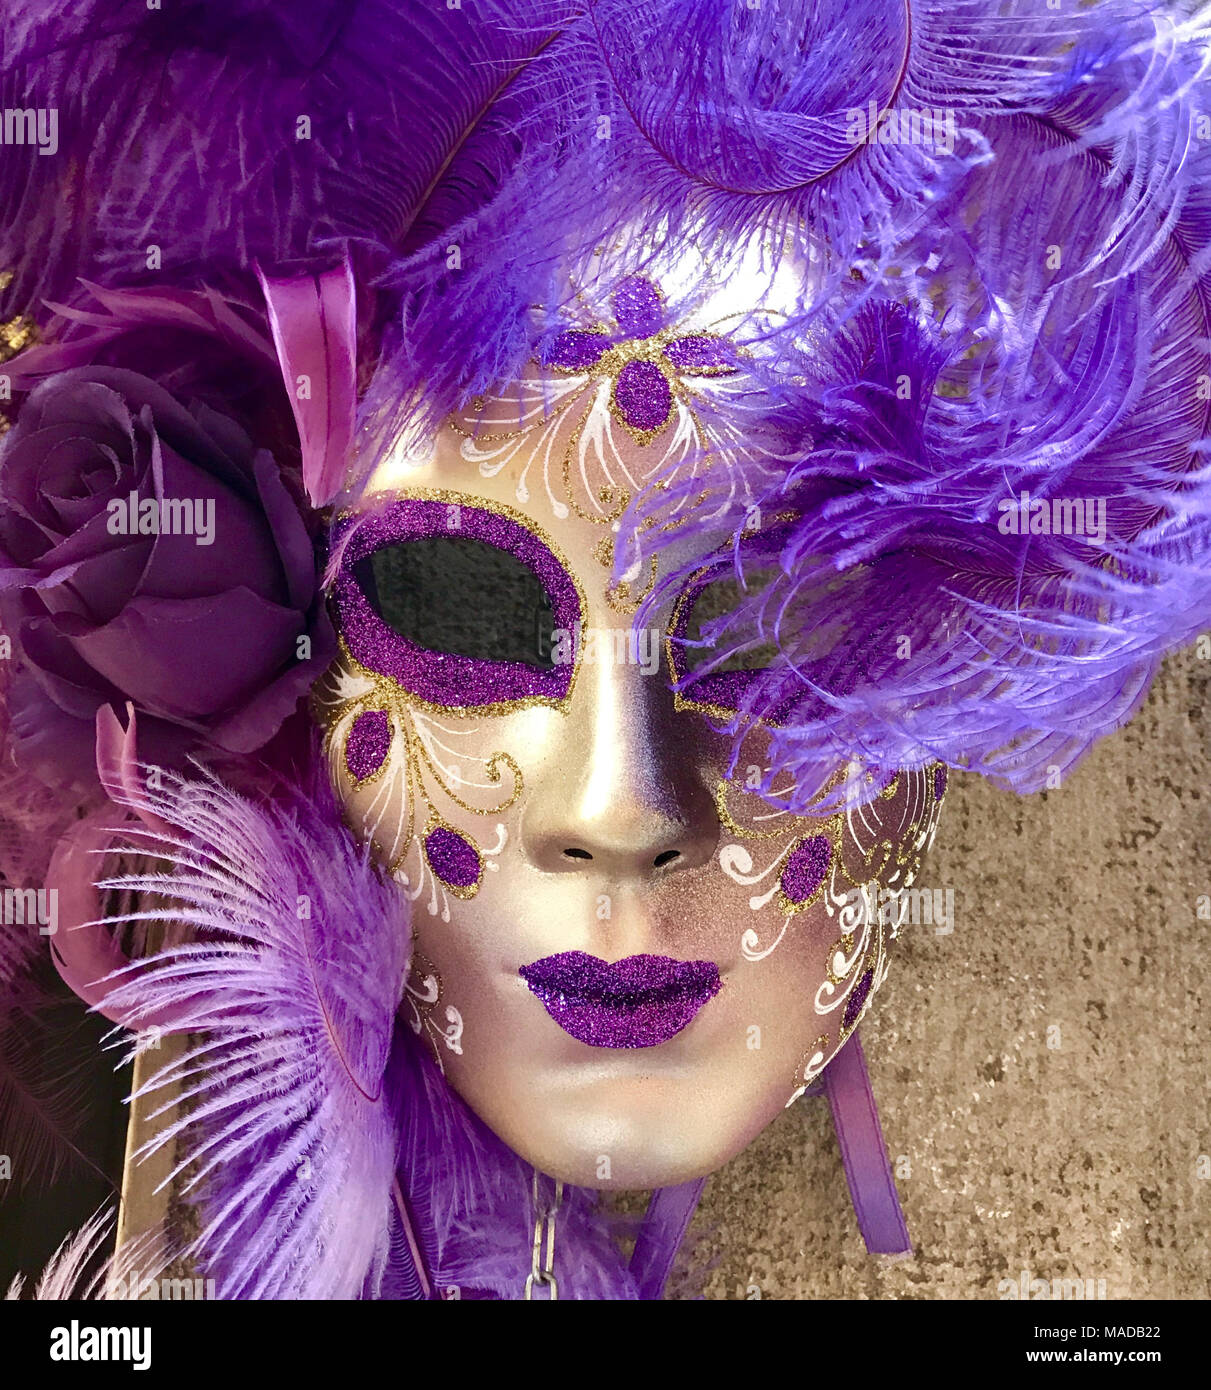 a19c5979d294 Masquerade Mask in Purple and Gold. Traditional Venetian Costume. Square  image.